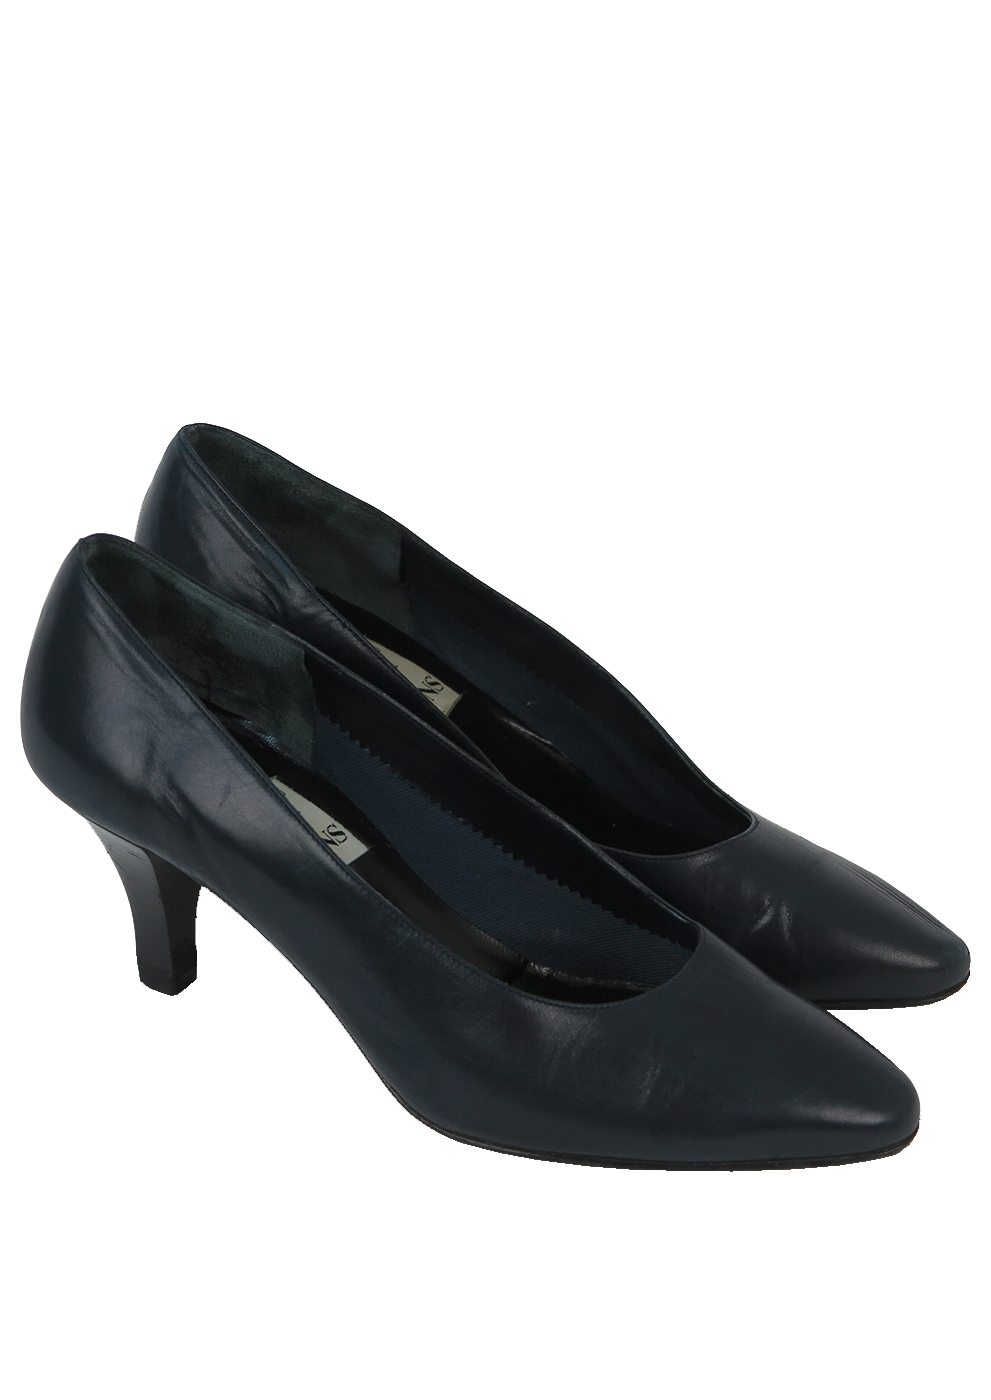 Navy Blue Mid Heel Leather Court Shoes Uk Size 3